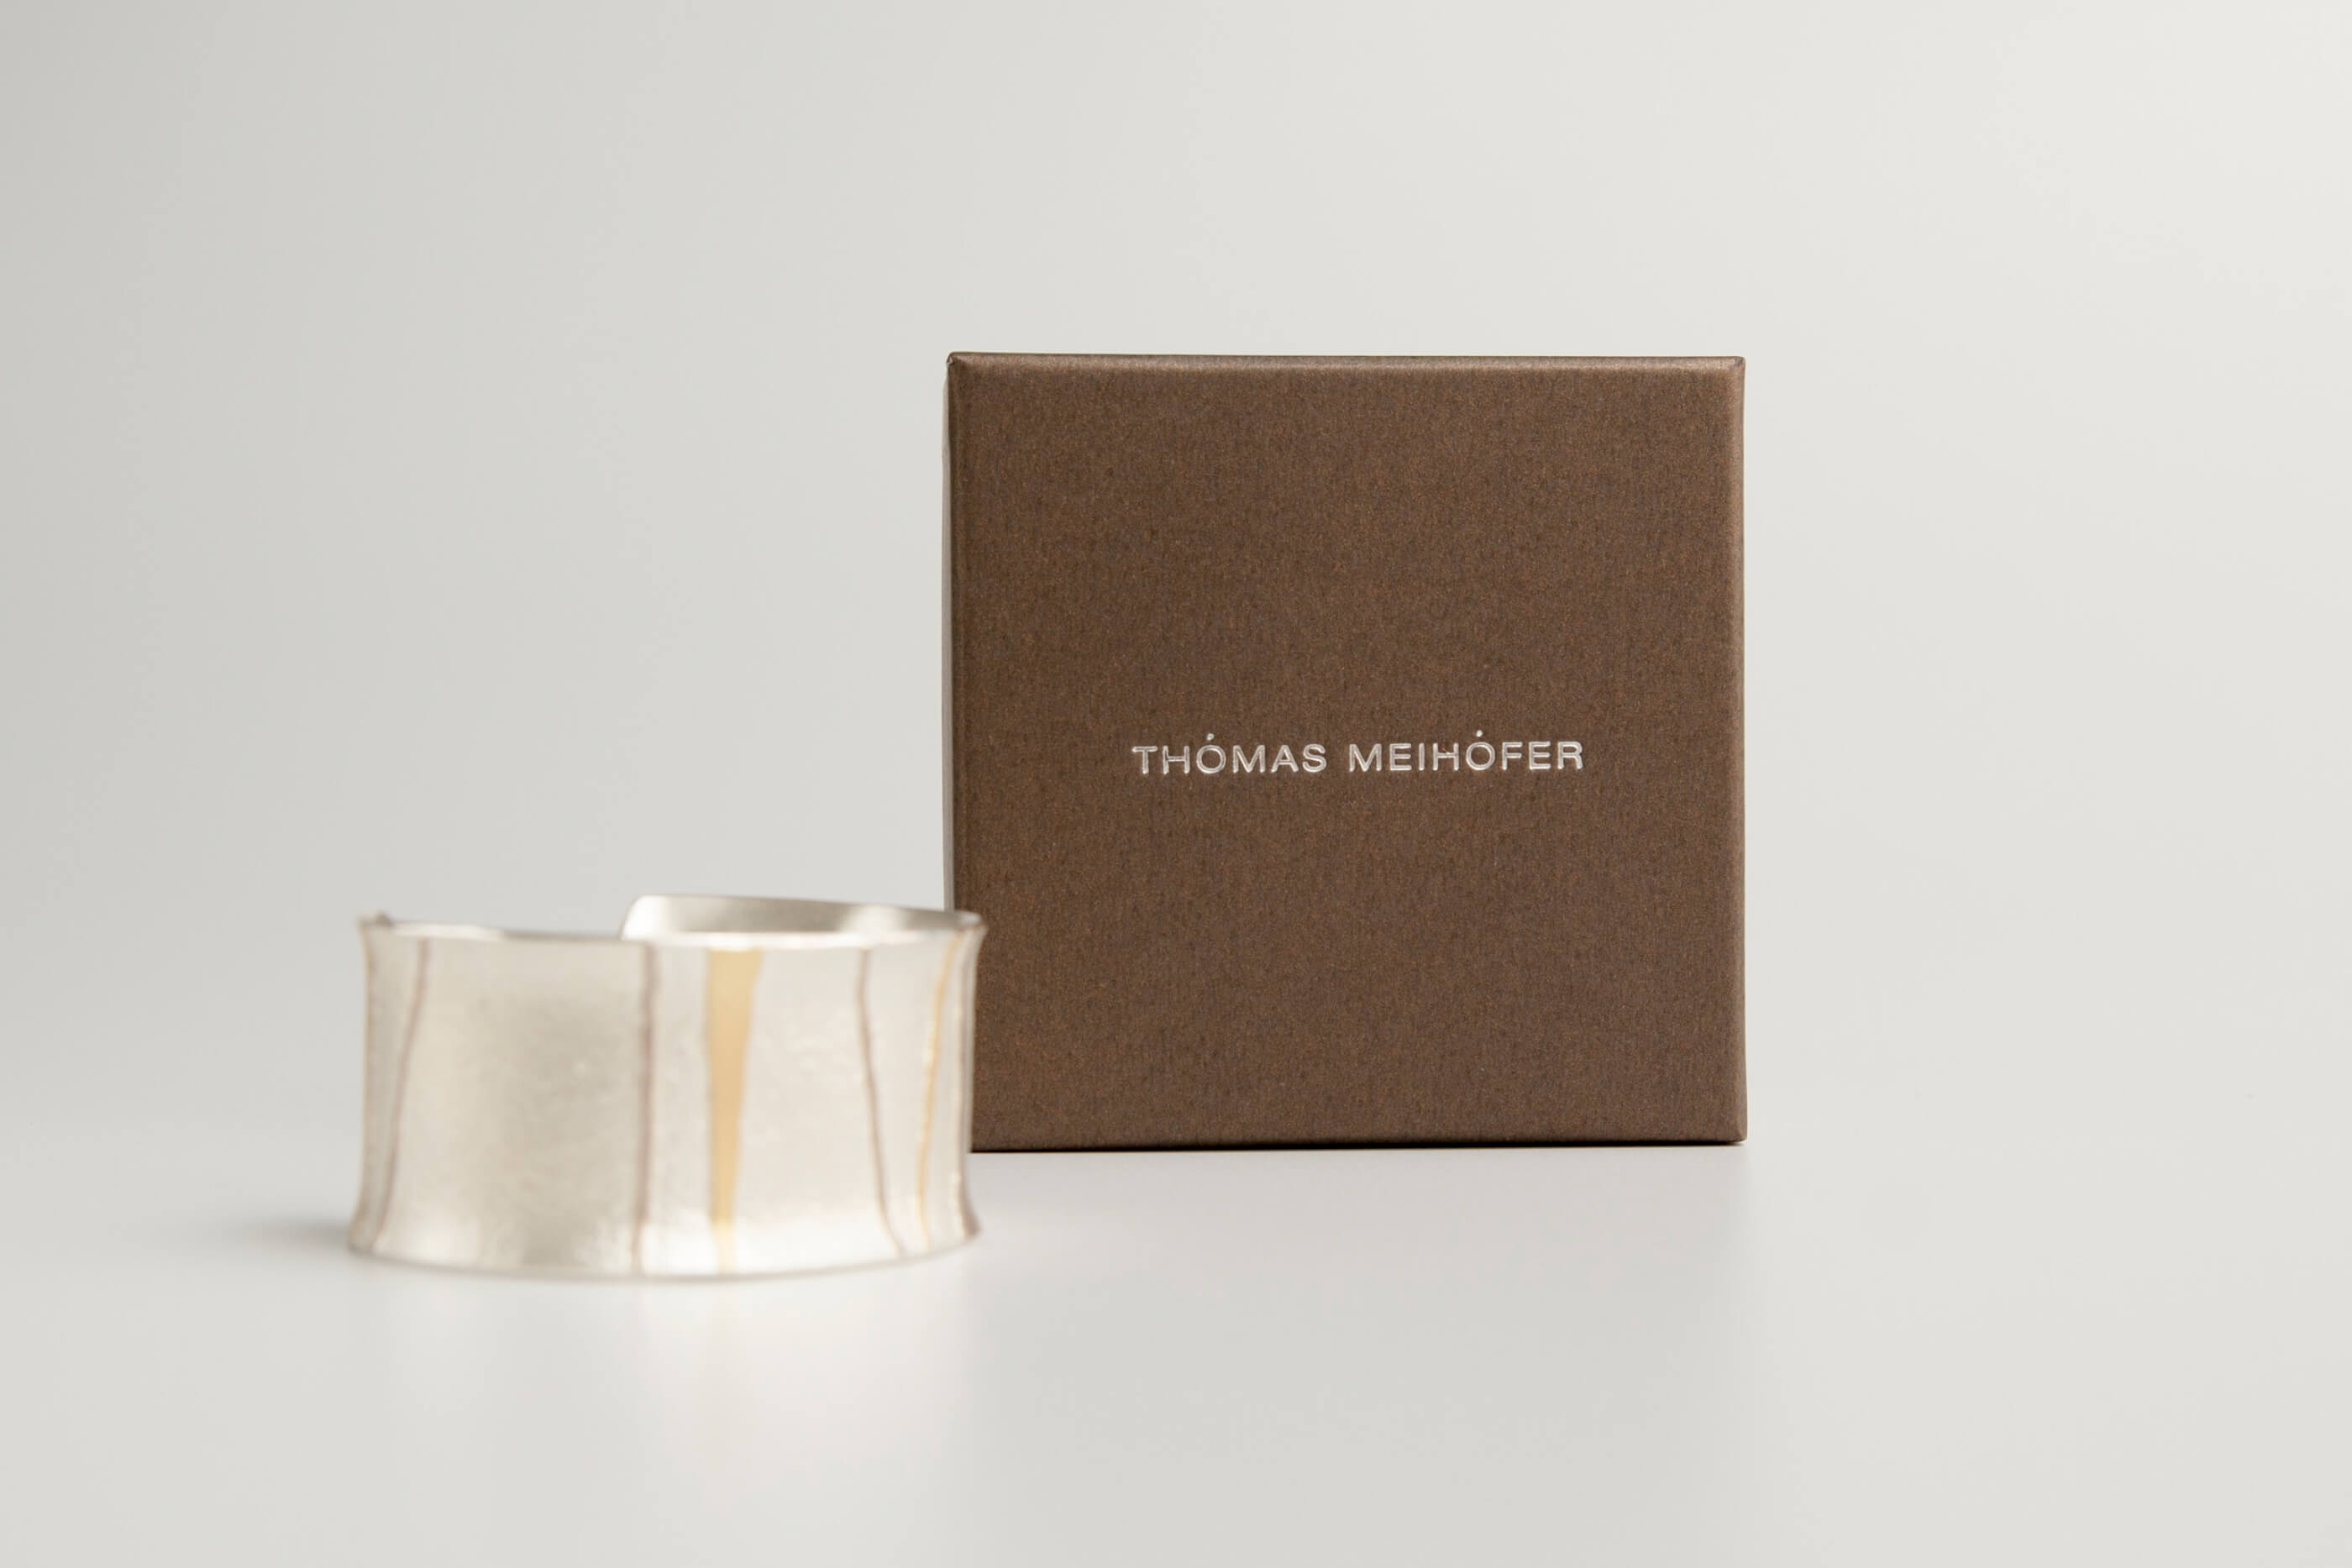 thomas_meihofer_box